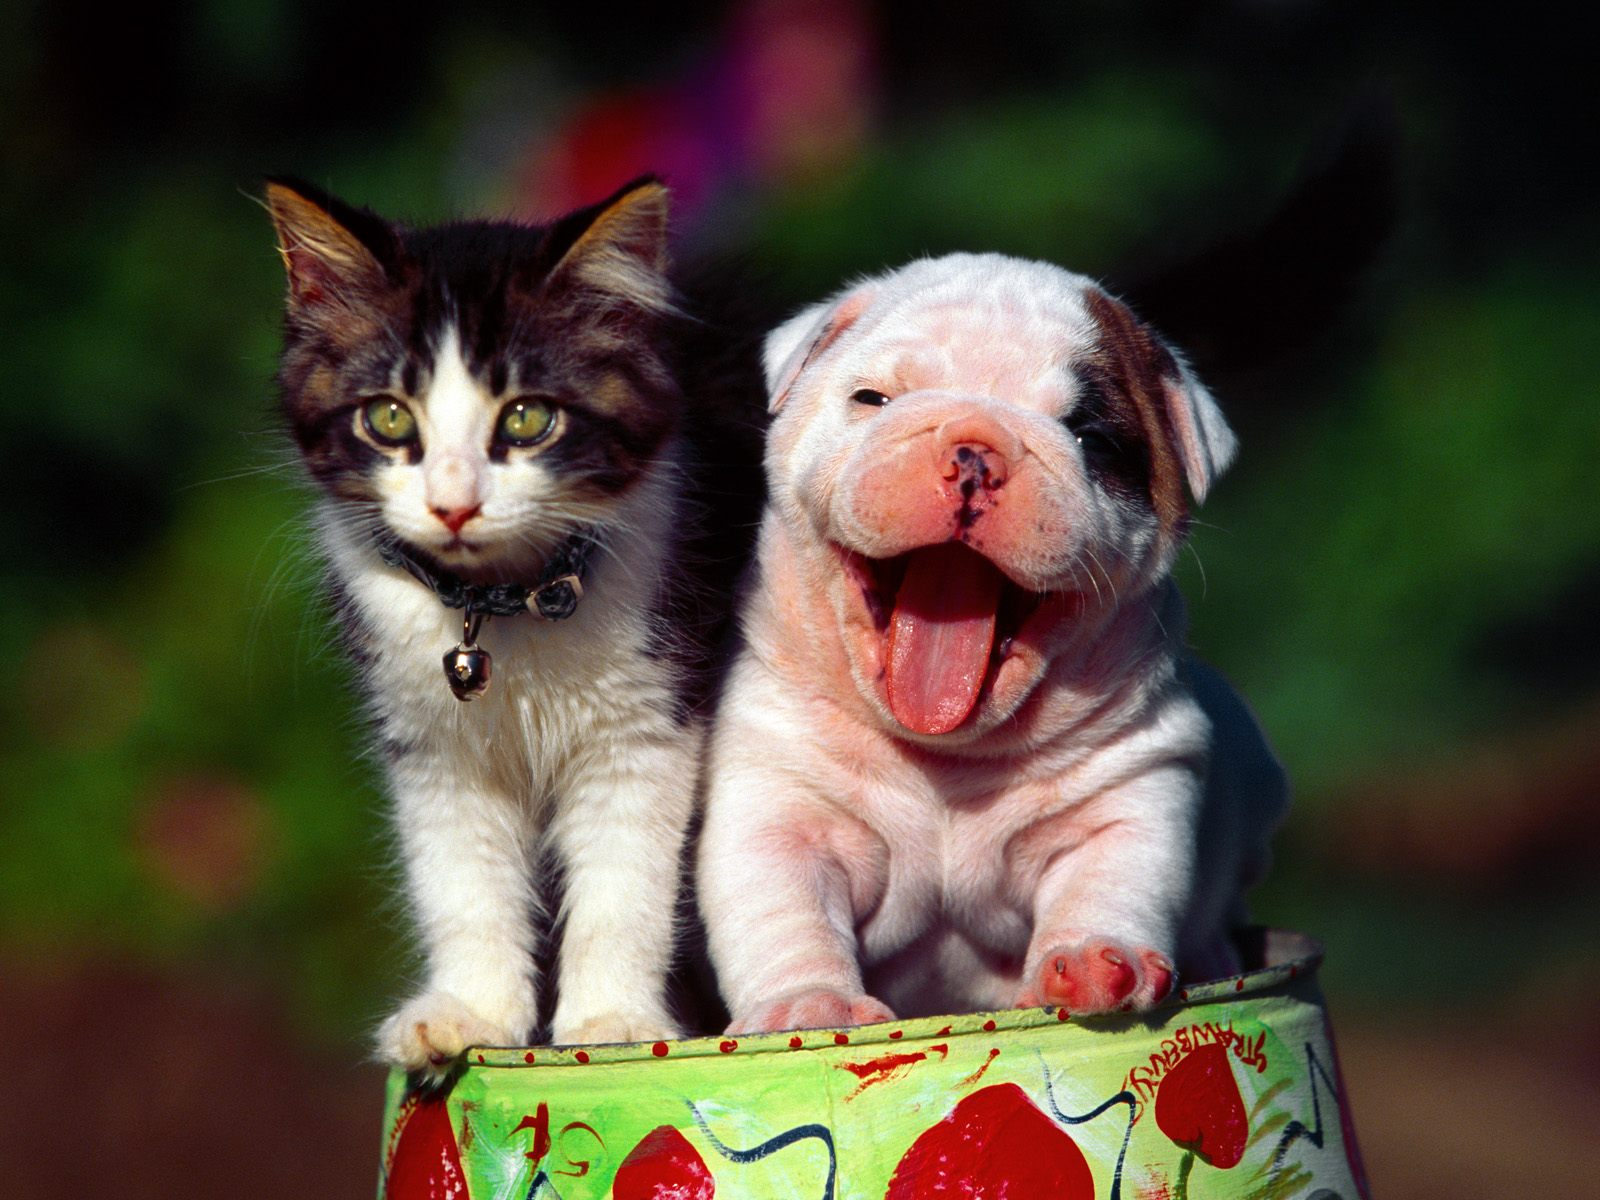 Dogs and Cats Wallpaper High Quality WallpapersWallpaper Desktop 1600x1200